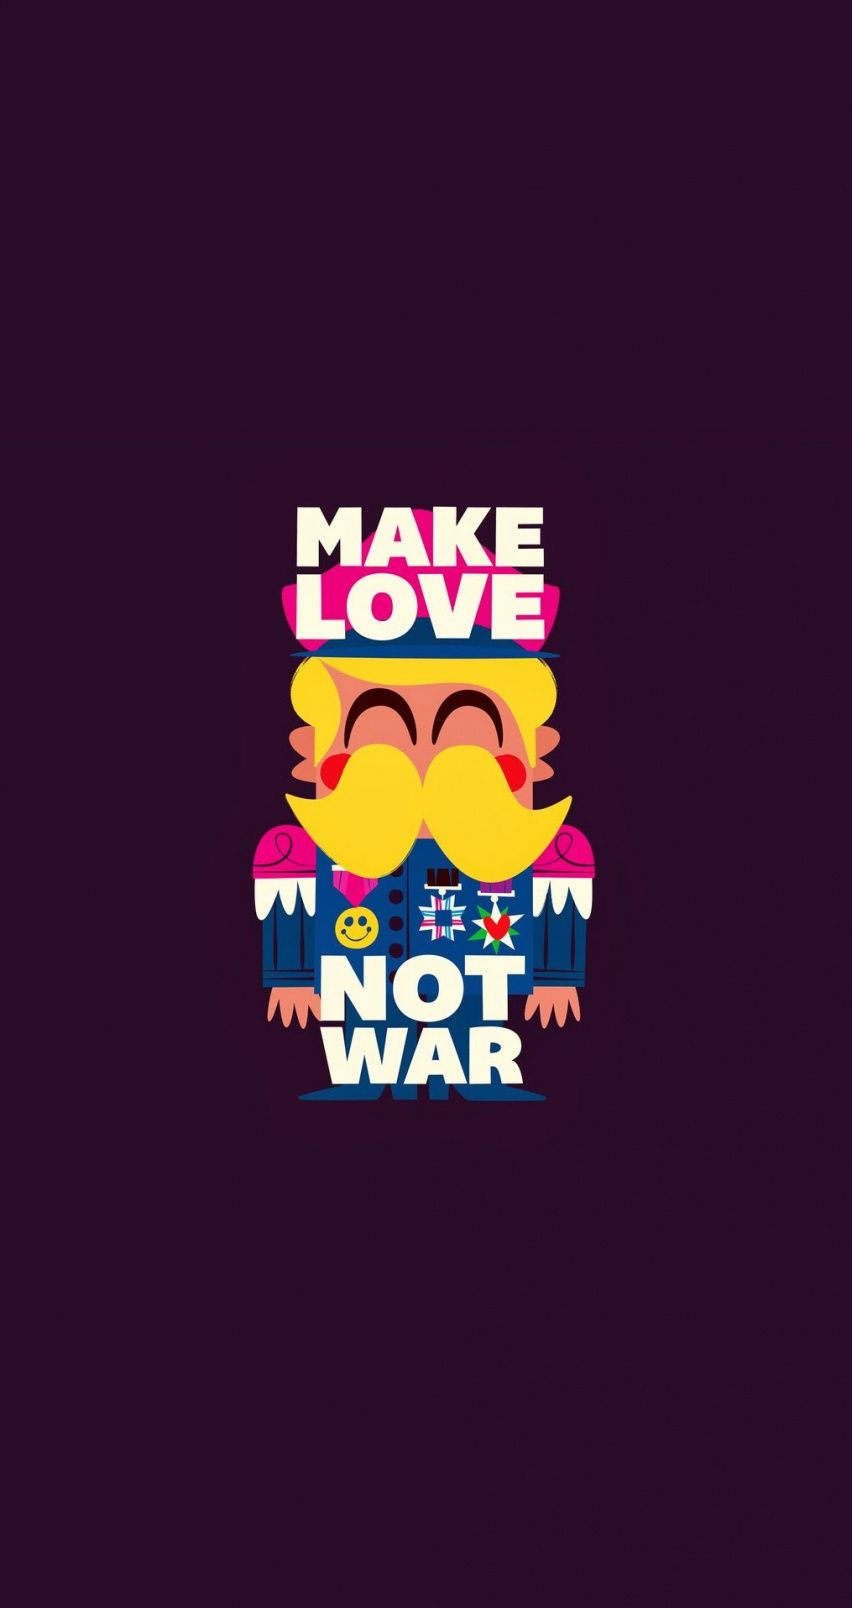 Love Wallpaper For Iphone 5c : Make love not war. Tap image for more cartoon wallpapers! - @mobile9 Funny cute wallpaper for ...